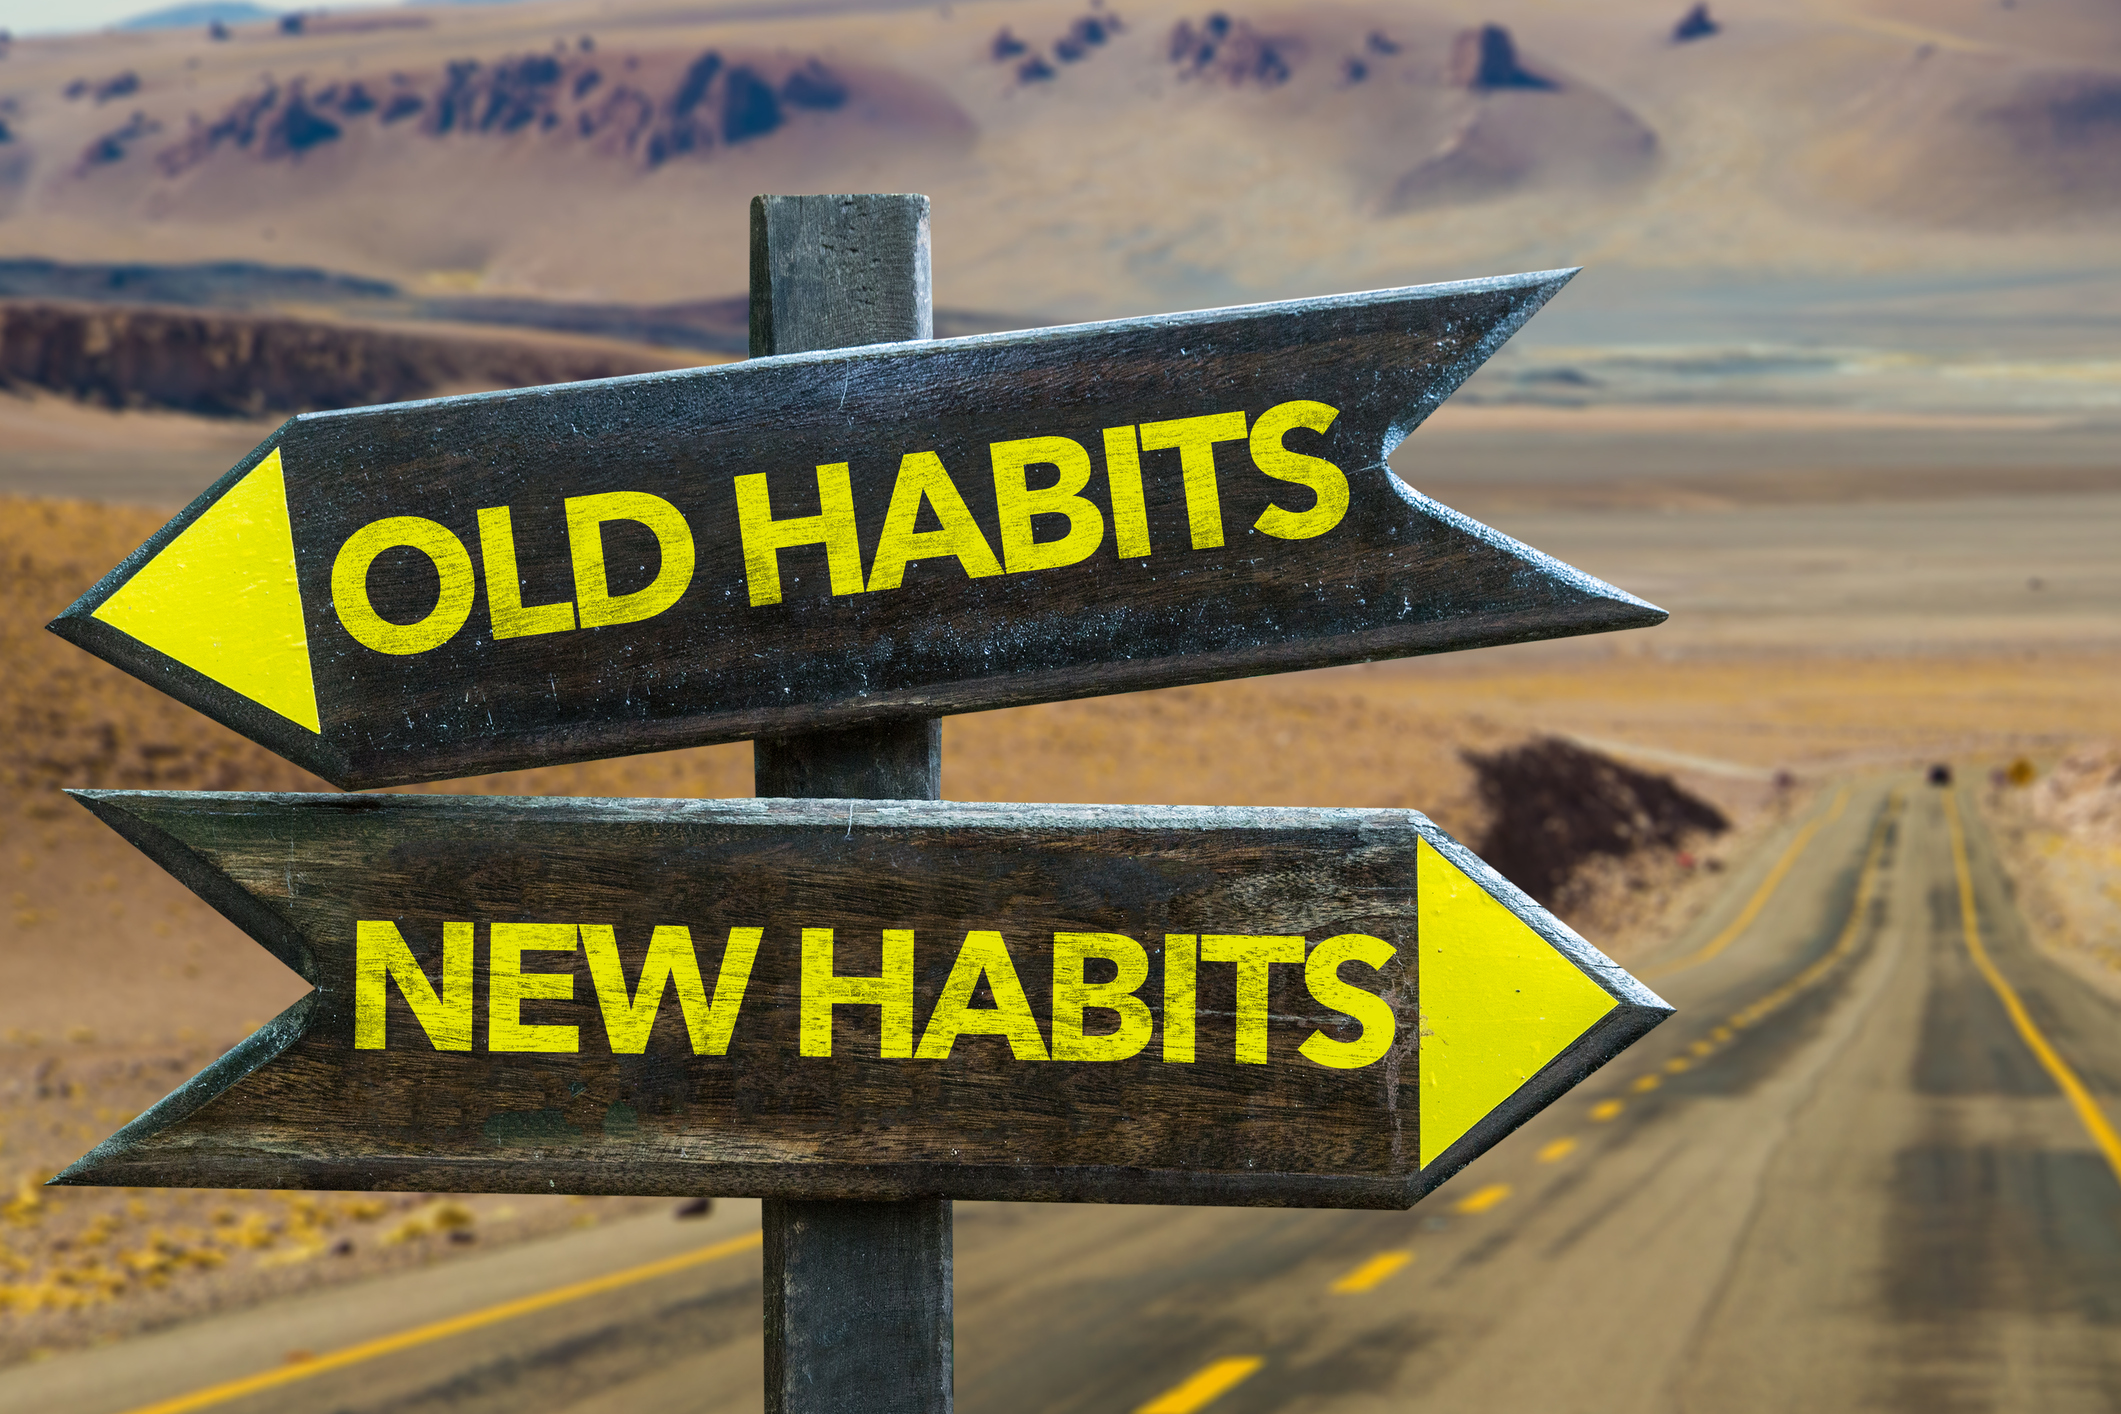 New and old habits Signpost